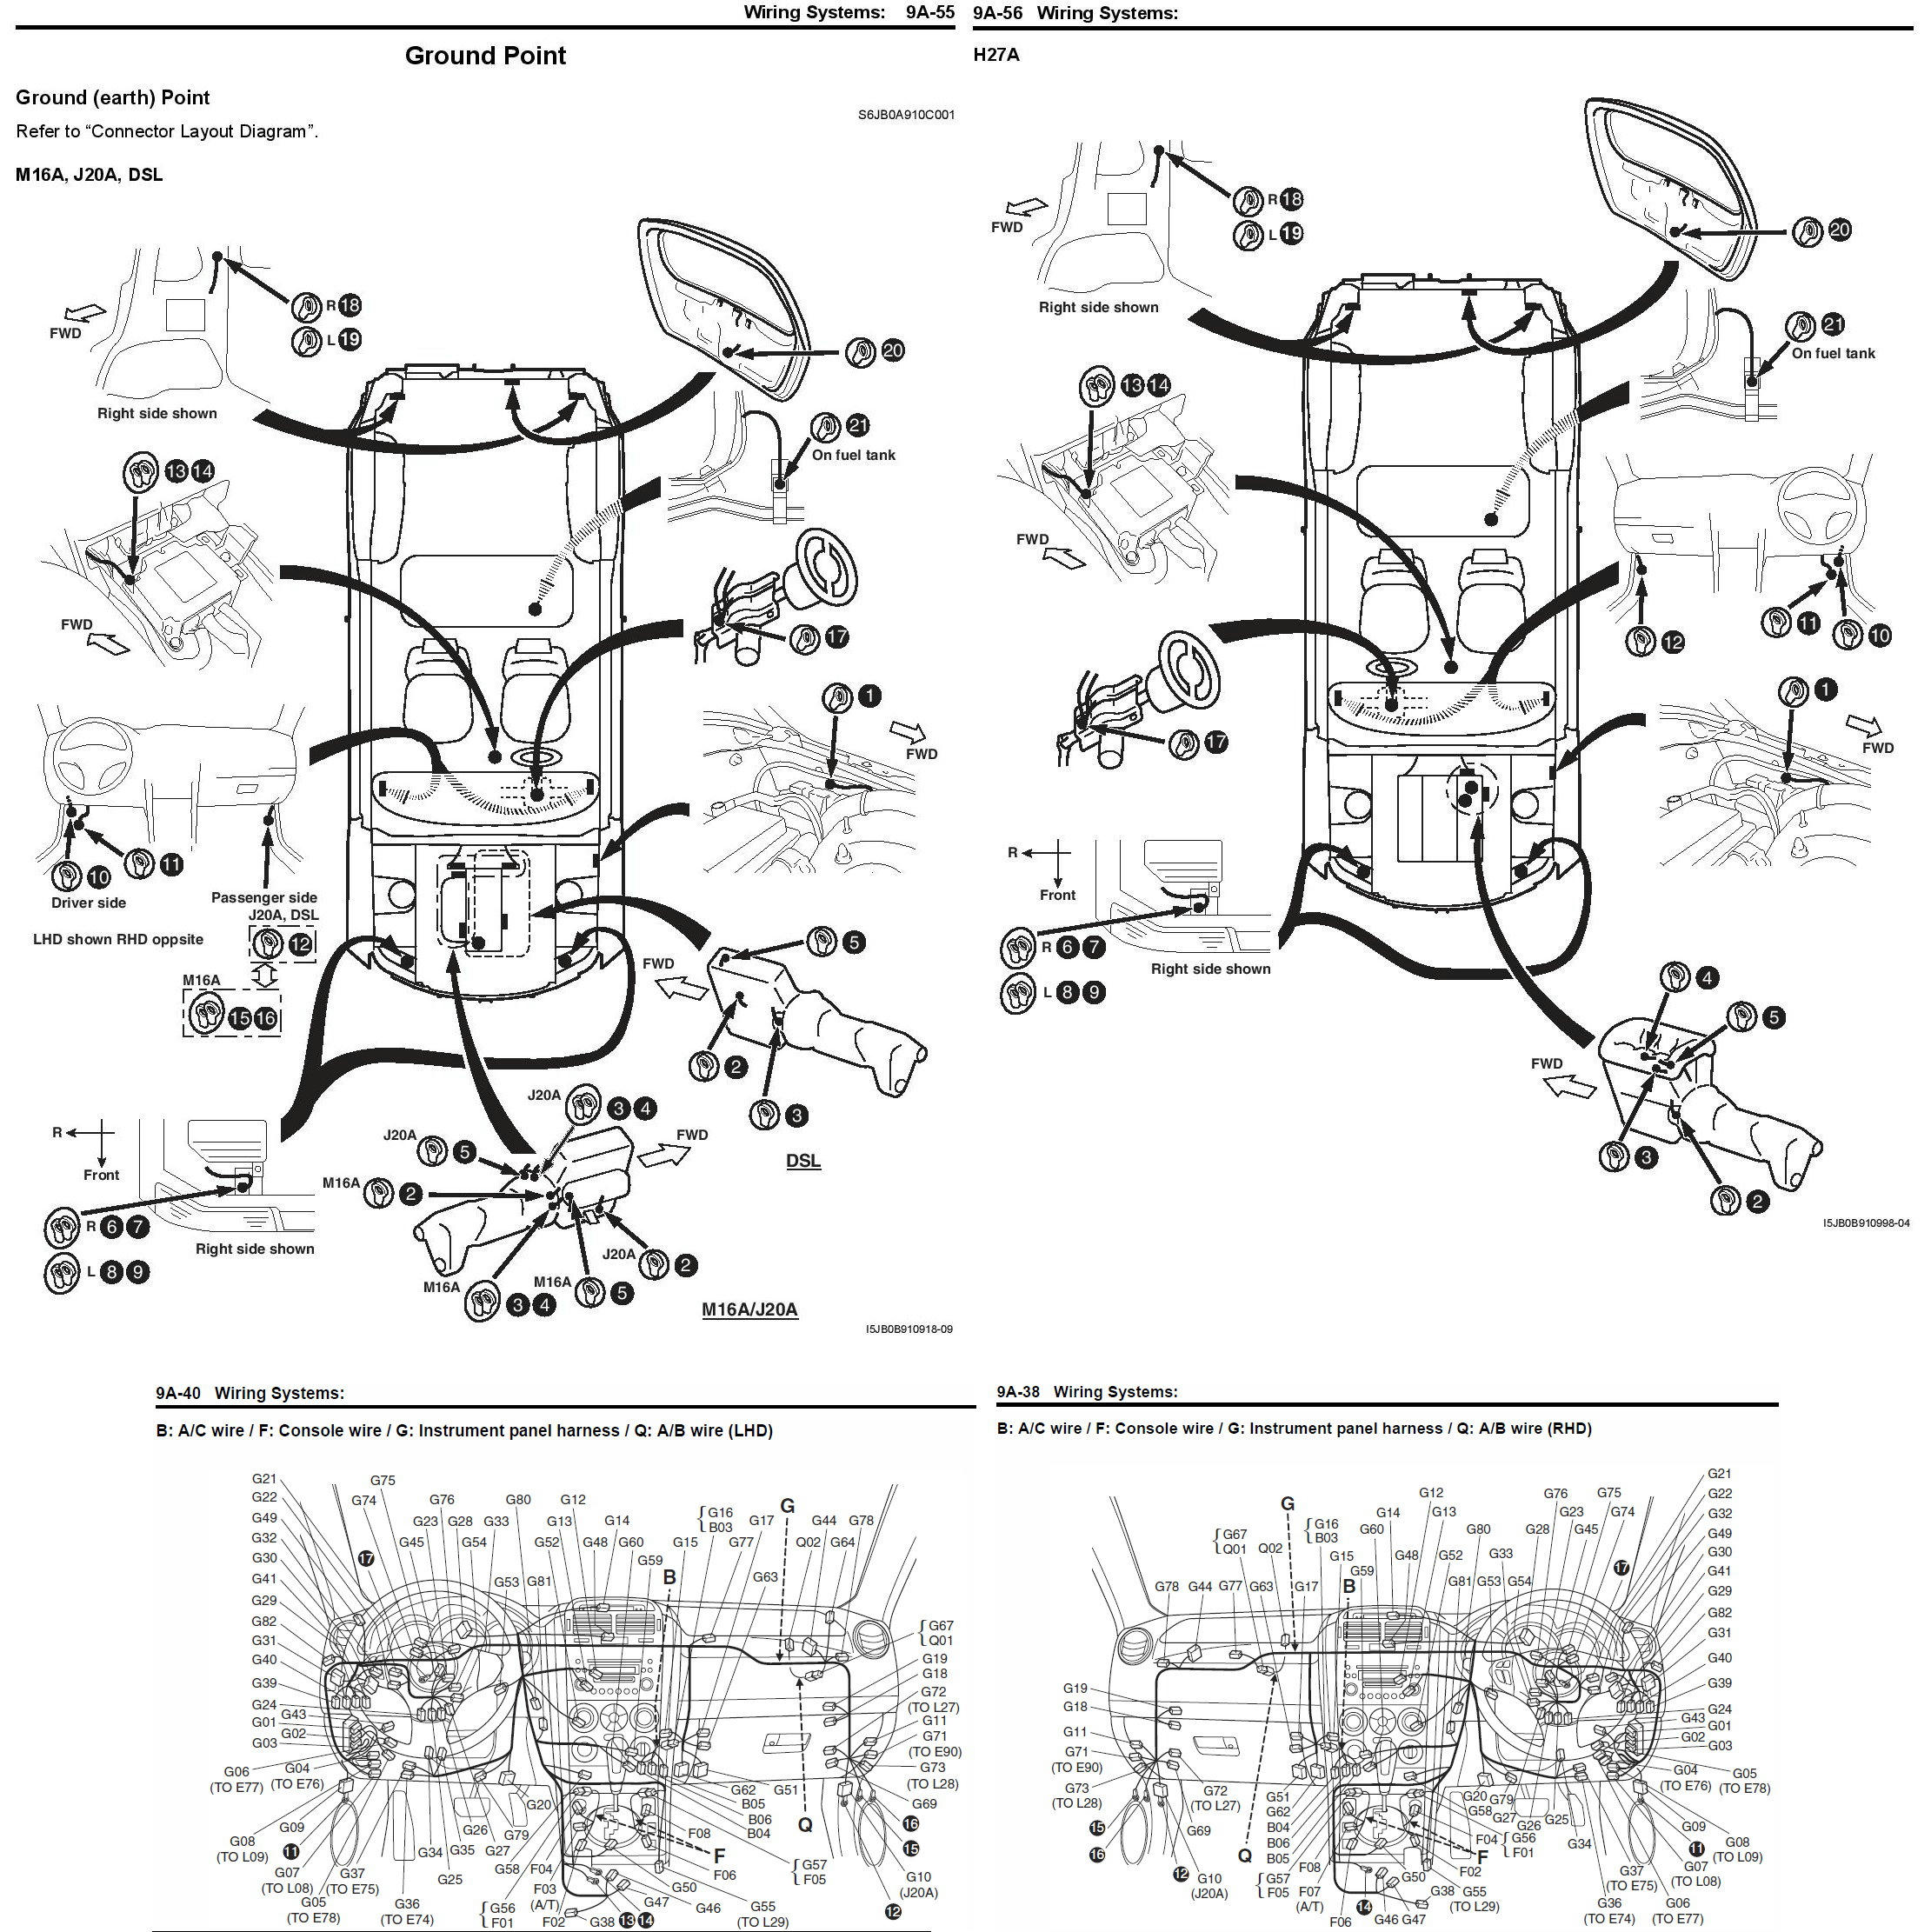 wiring diagram for suzuki grand vitara 2006